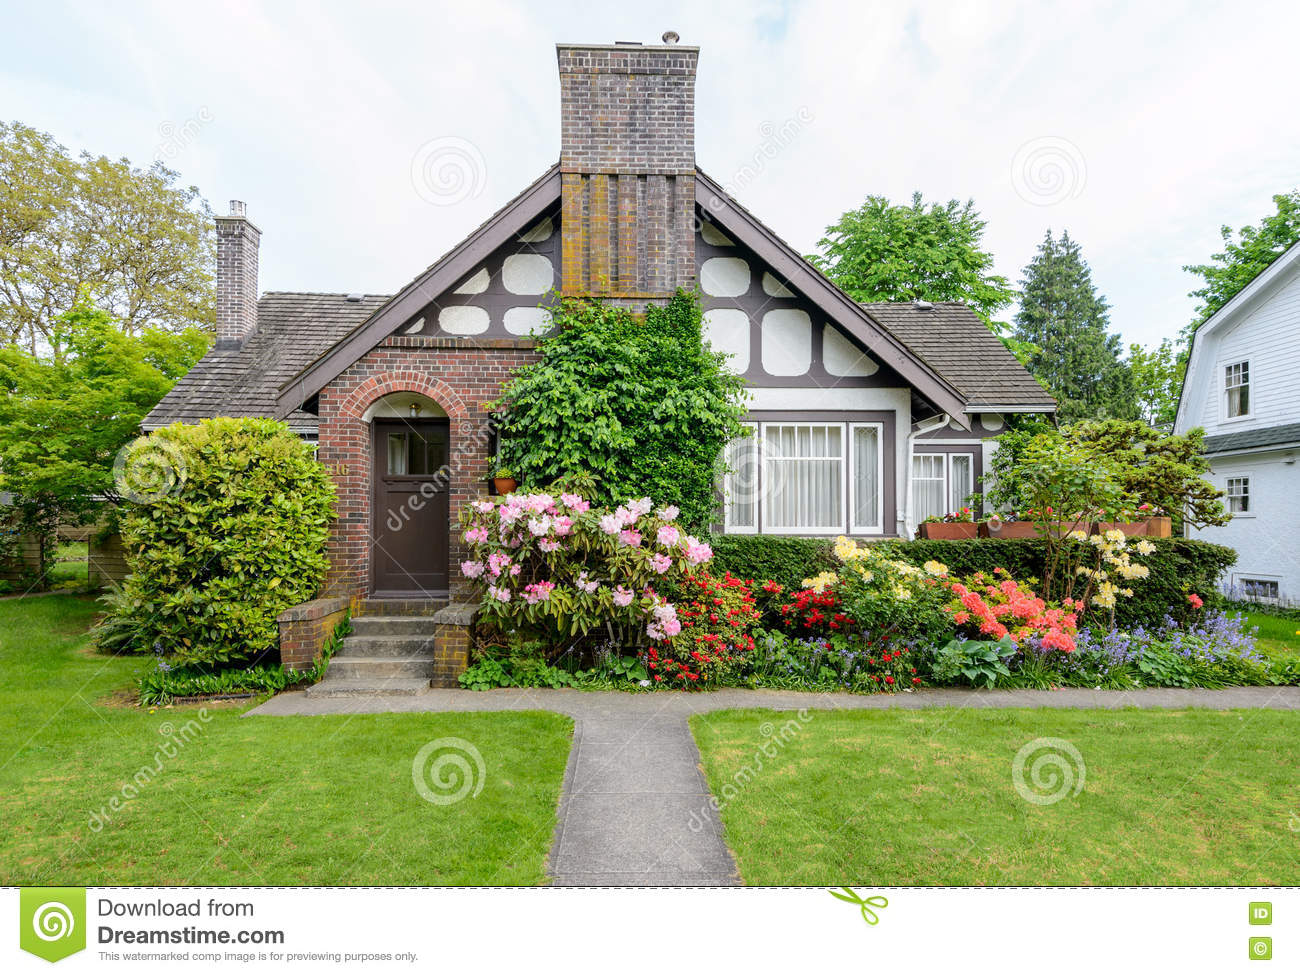 Cozy House With A Beautiful Garden On A Sunny Day Stock Image